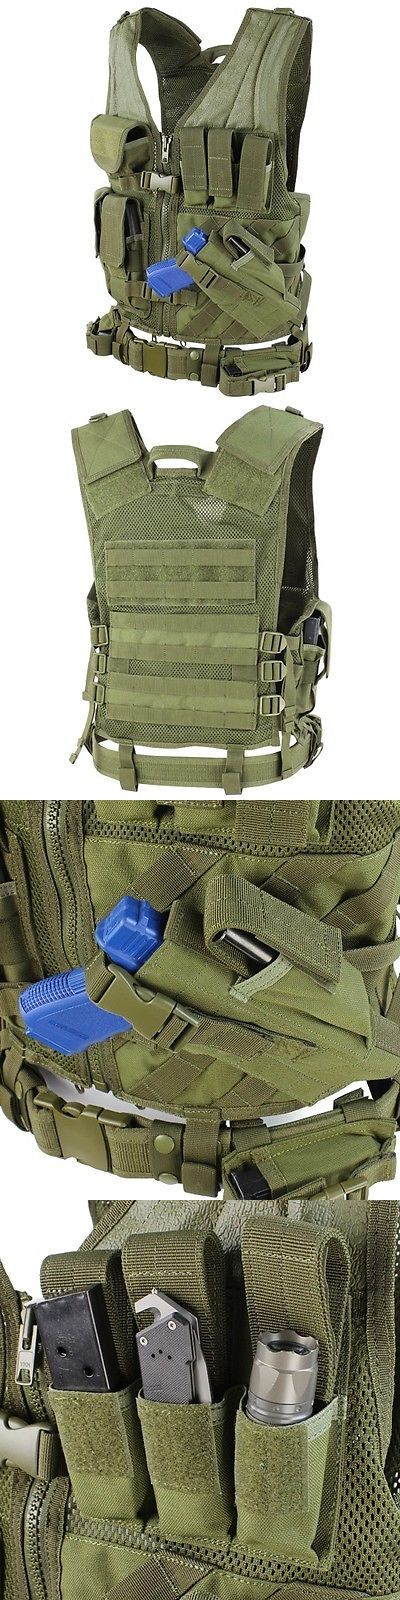 Chest Rigs and Tactical Vests 177891: Condor M L Military Cross Draw Tactical Chest Rig Vest W Holster Pouch Od -> BUY IT NOW ONLY: $62.95 on eBay!